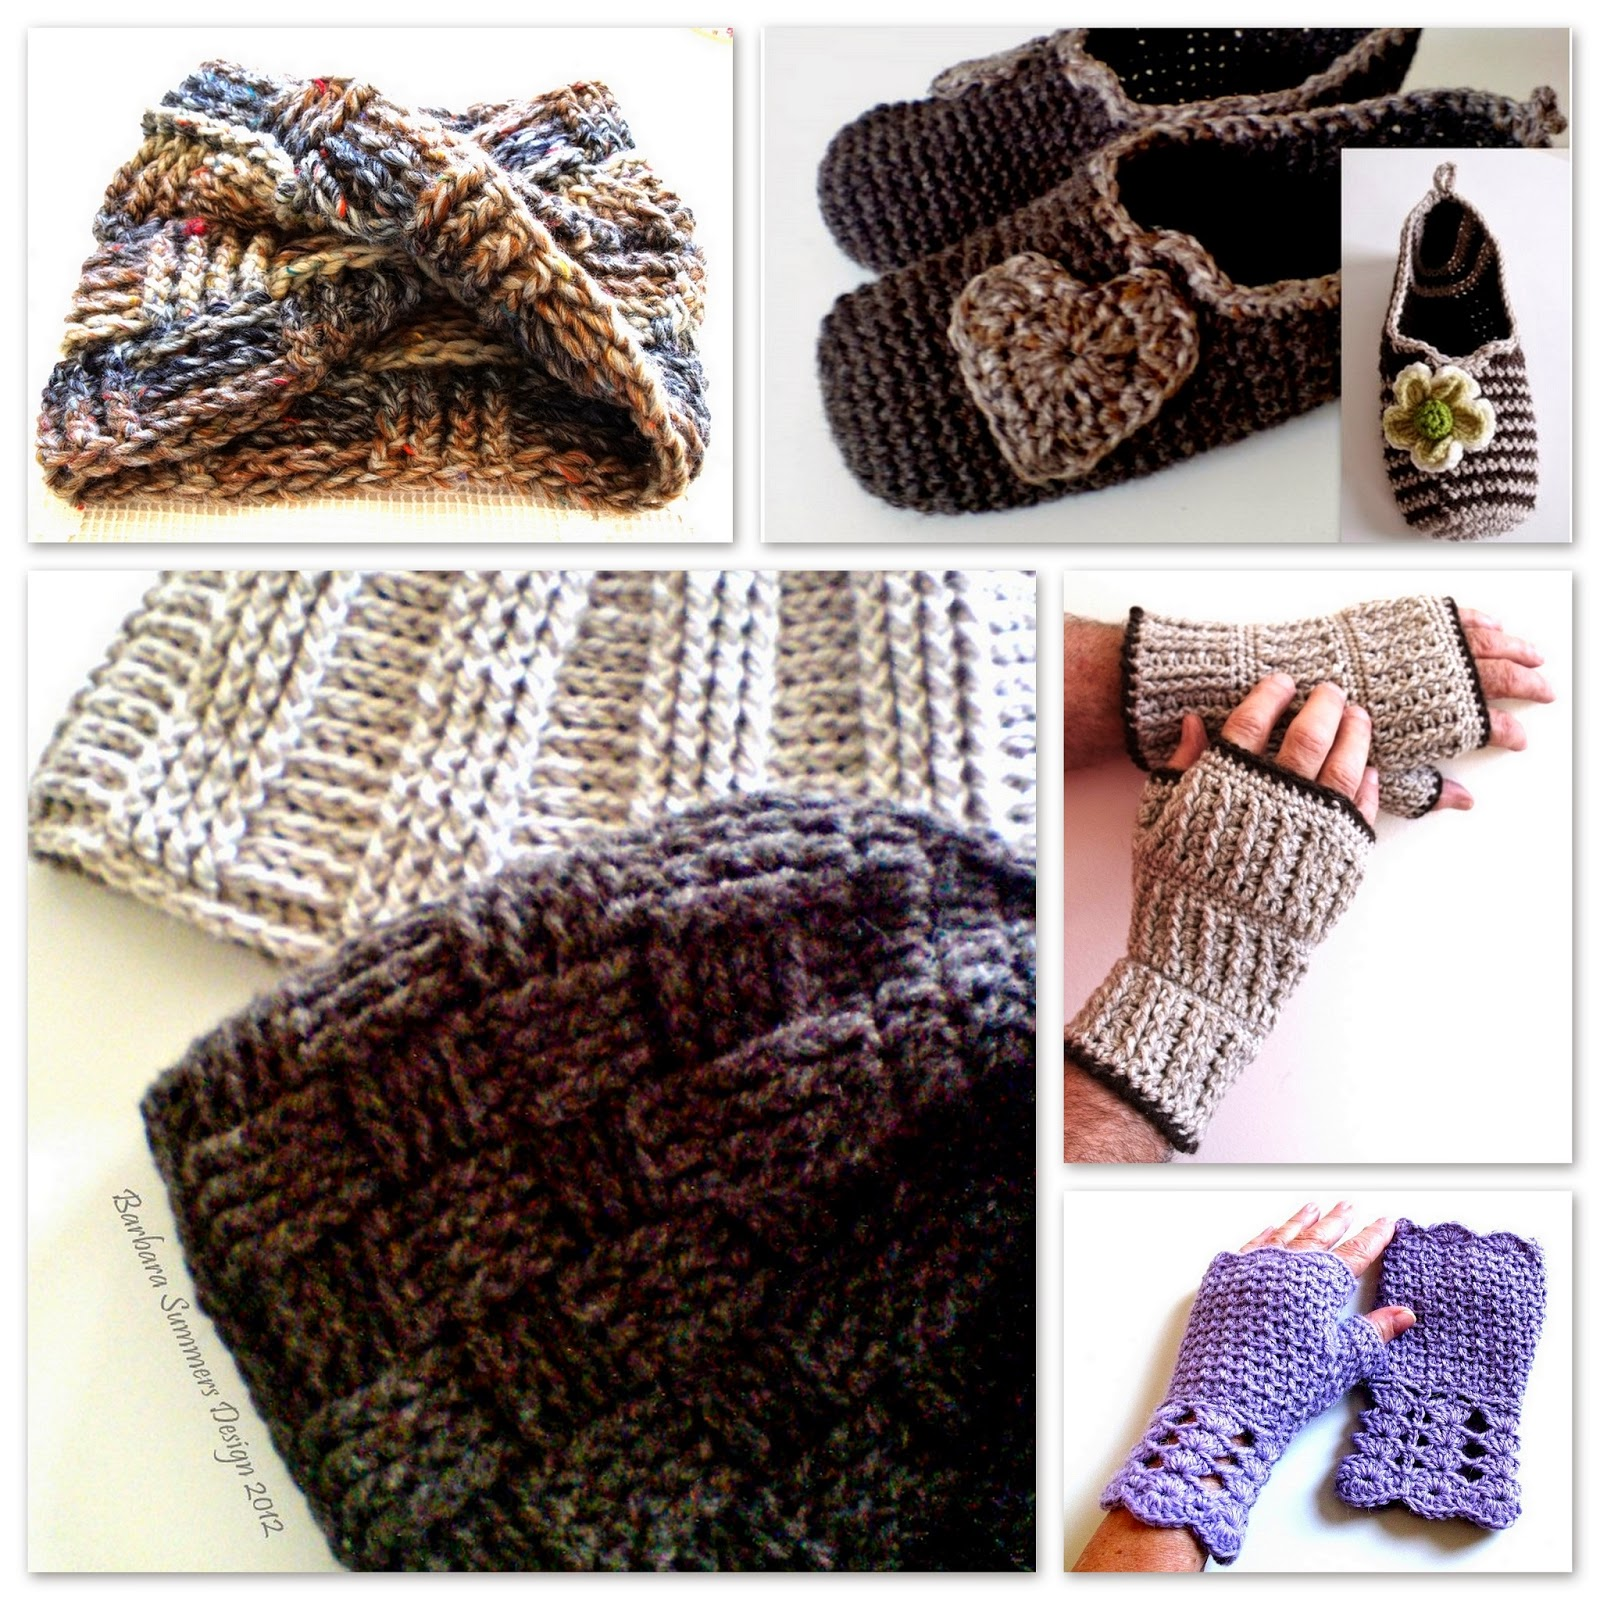 Crochet Patterns Gifts : crochet patterns, how to crochet, hats beanies, mittens, slippers ...